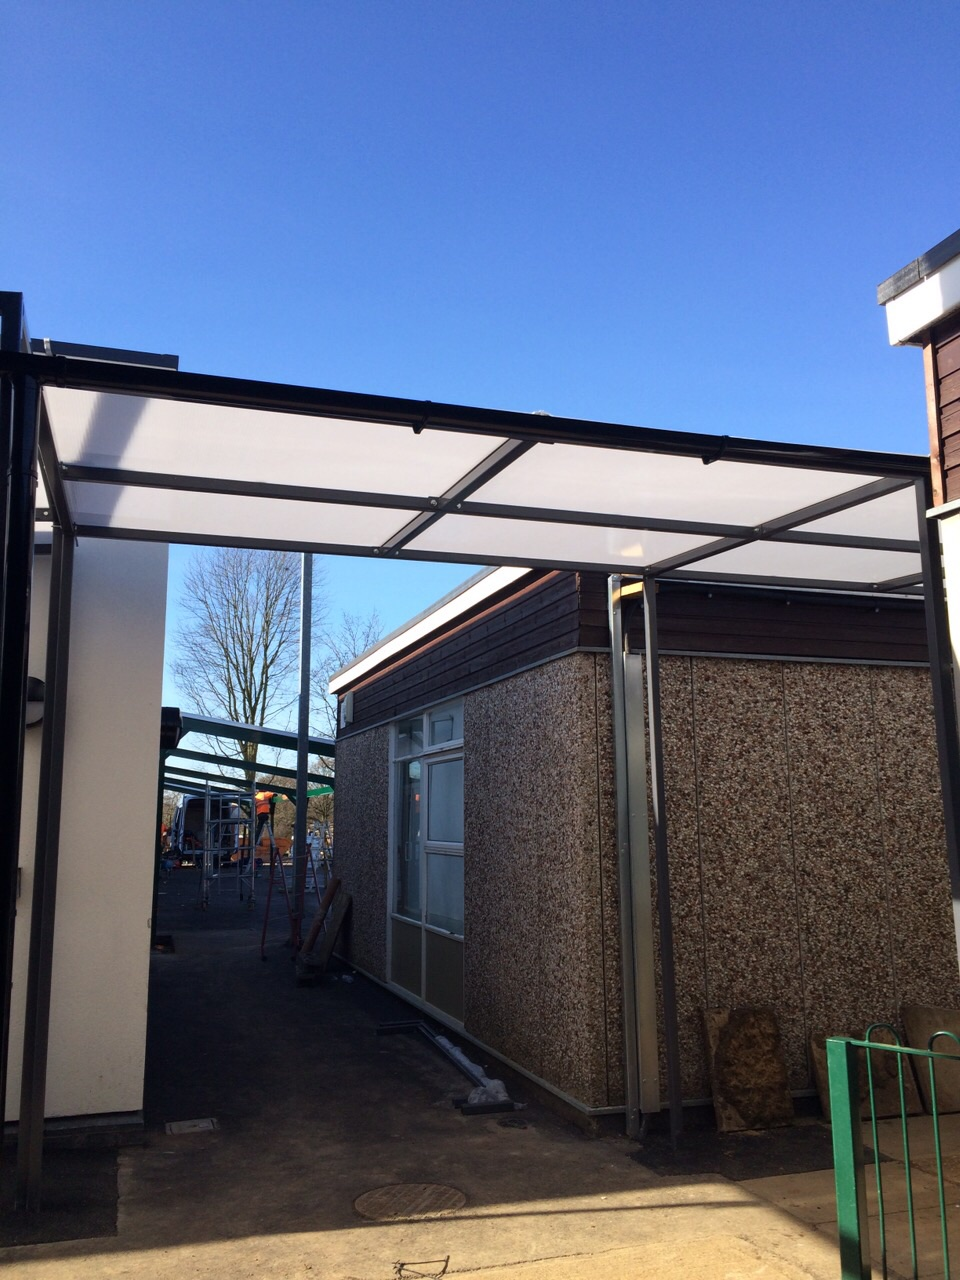 COVERED-WALKWAY-SHELTER-STORE